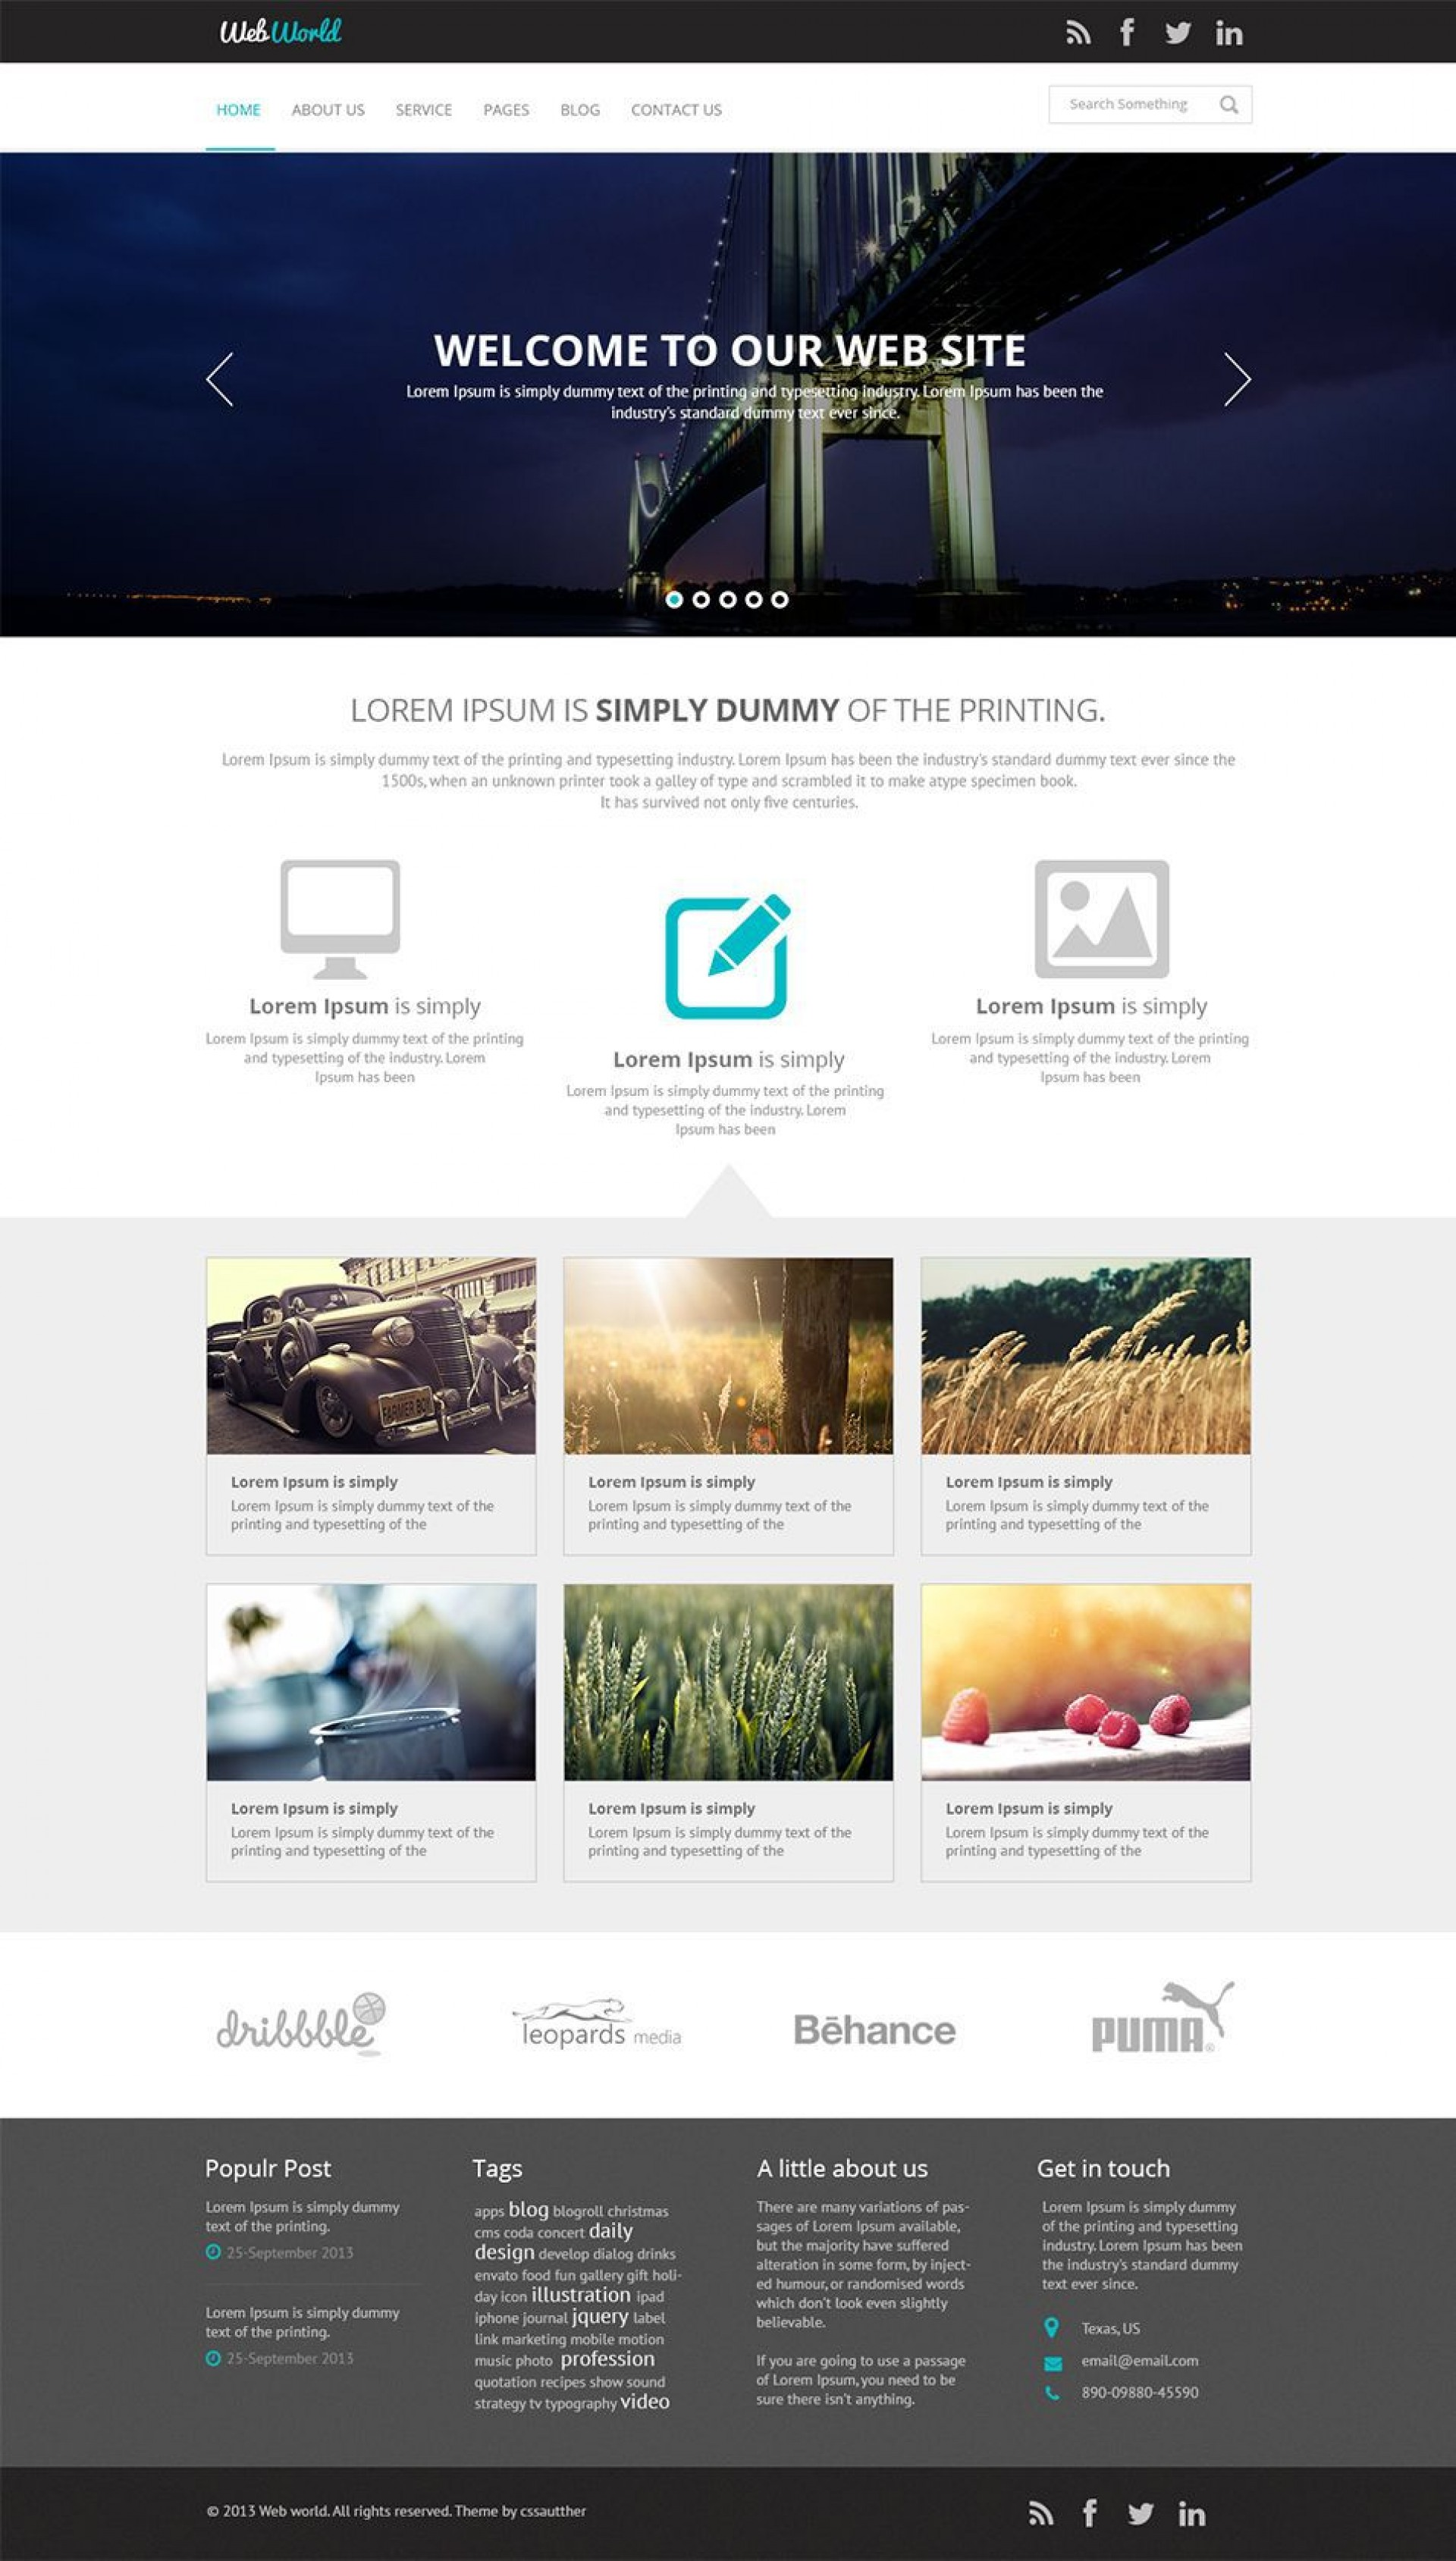 001 Unforgettable Free Professional Web Design Template Sample  Templates Website Download1920